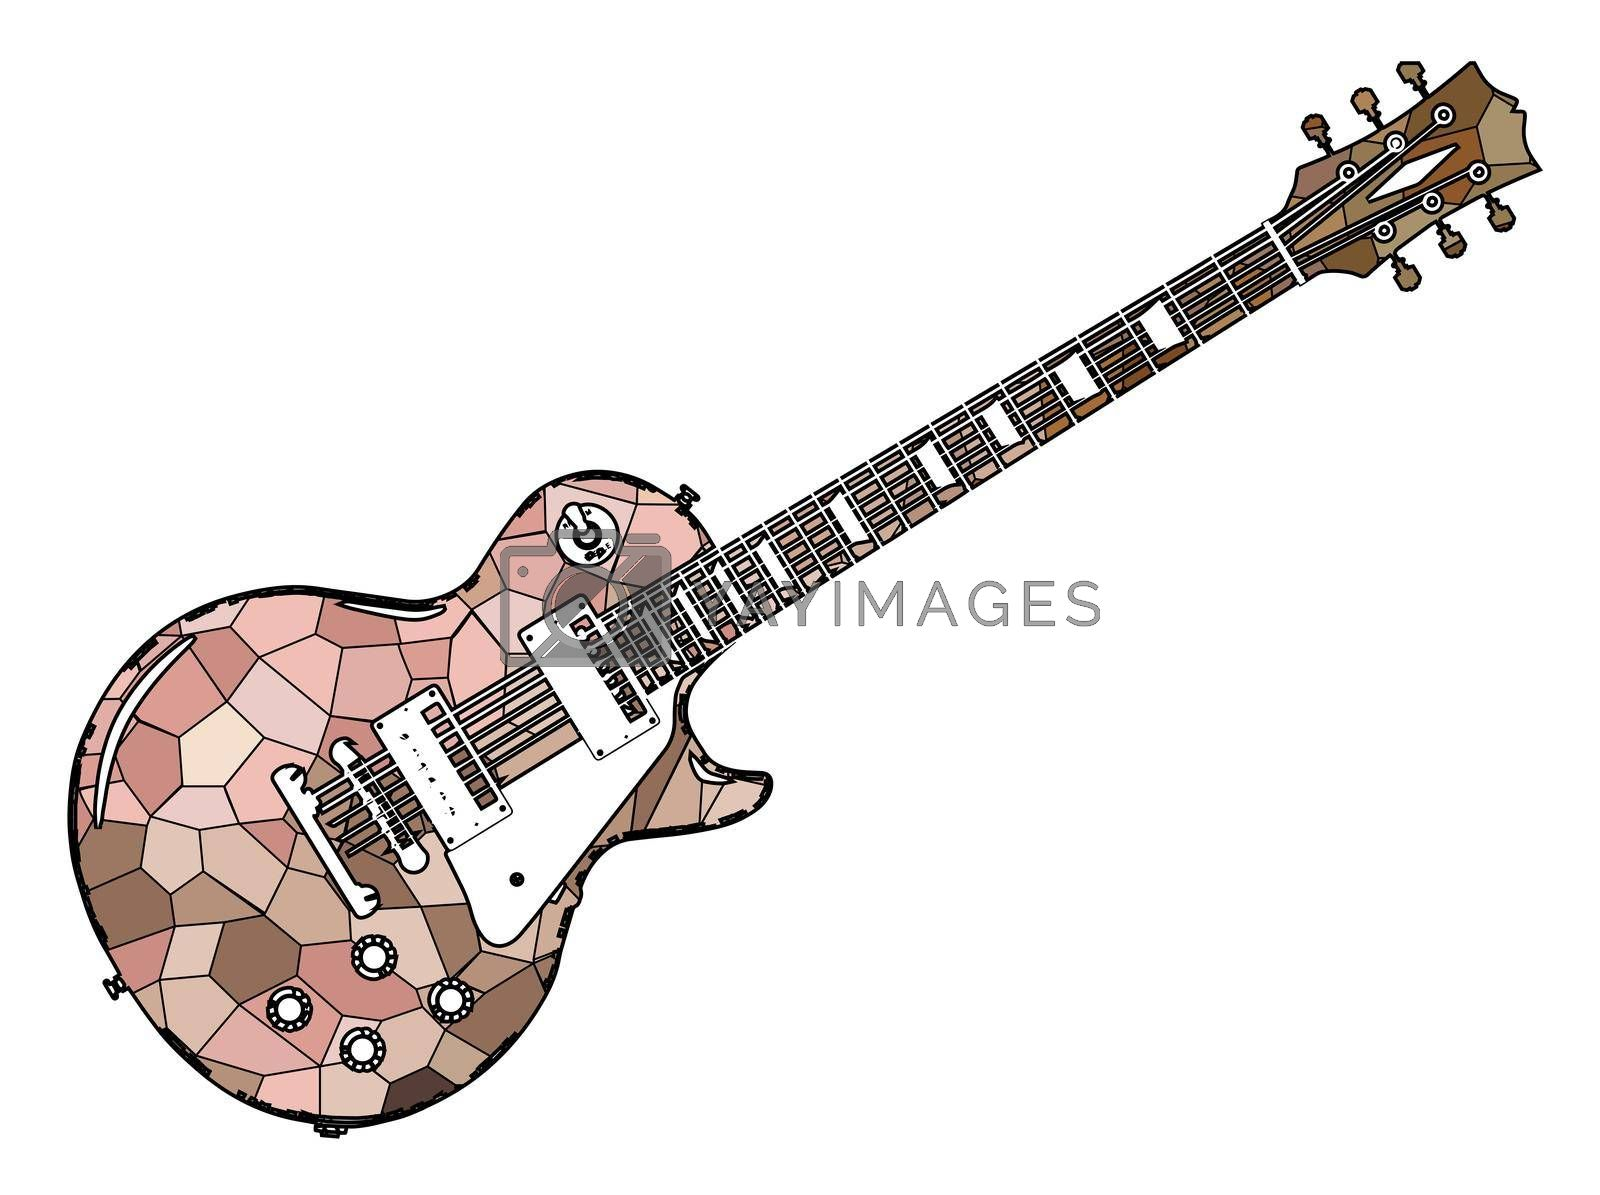 A classic red electric solid body guitar isolated on a white background